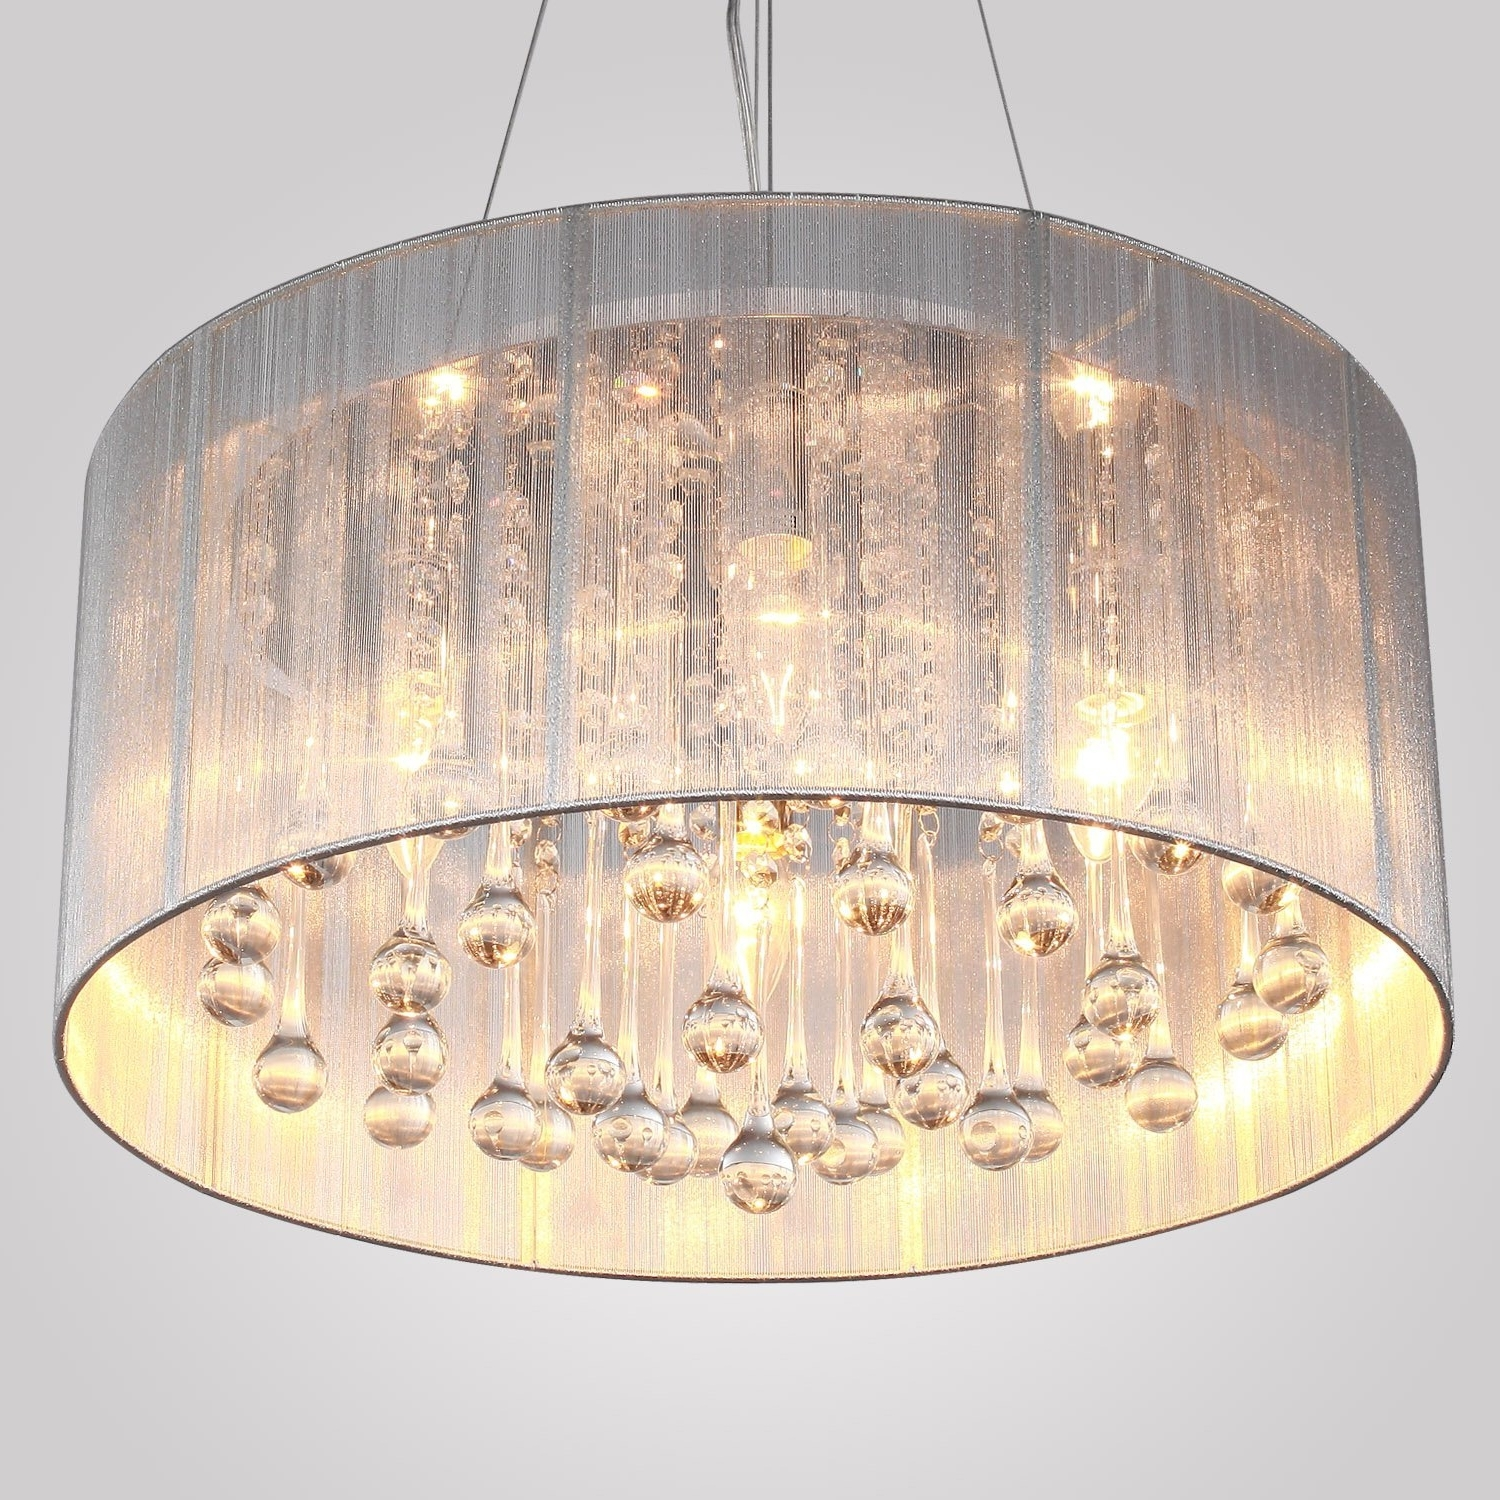 Widely Used Light Fixture : Drum Pendant Lighting Lowes Rectangular Flush Mount Inside Extra Large Chandelier Lighting (View 20 of 20)